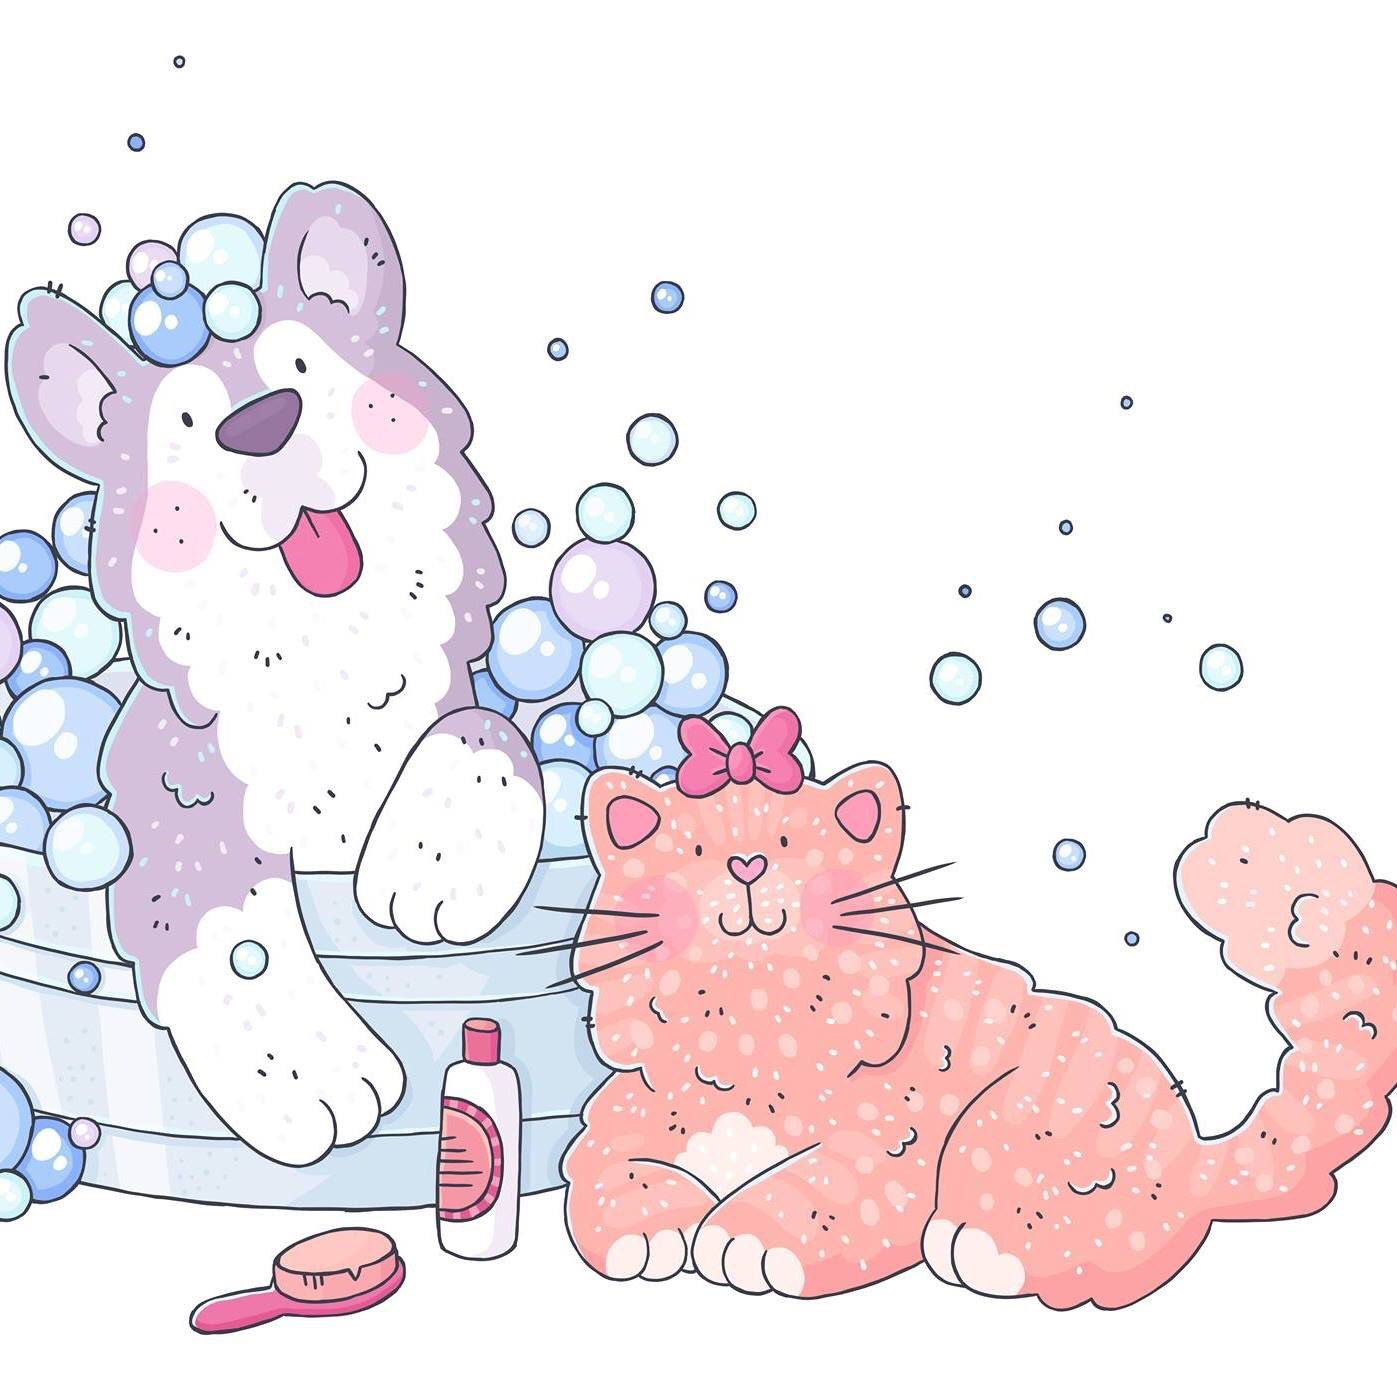 Bubbles and Bows